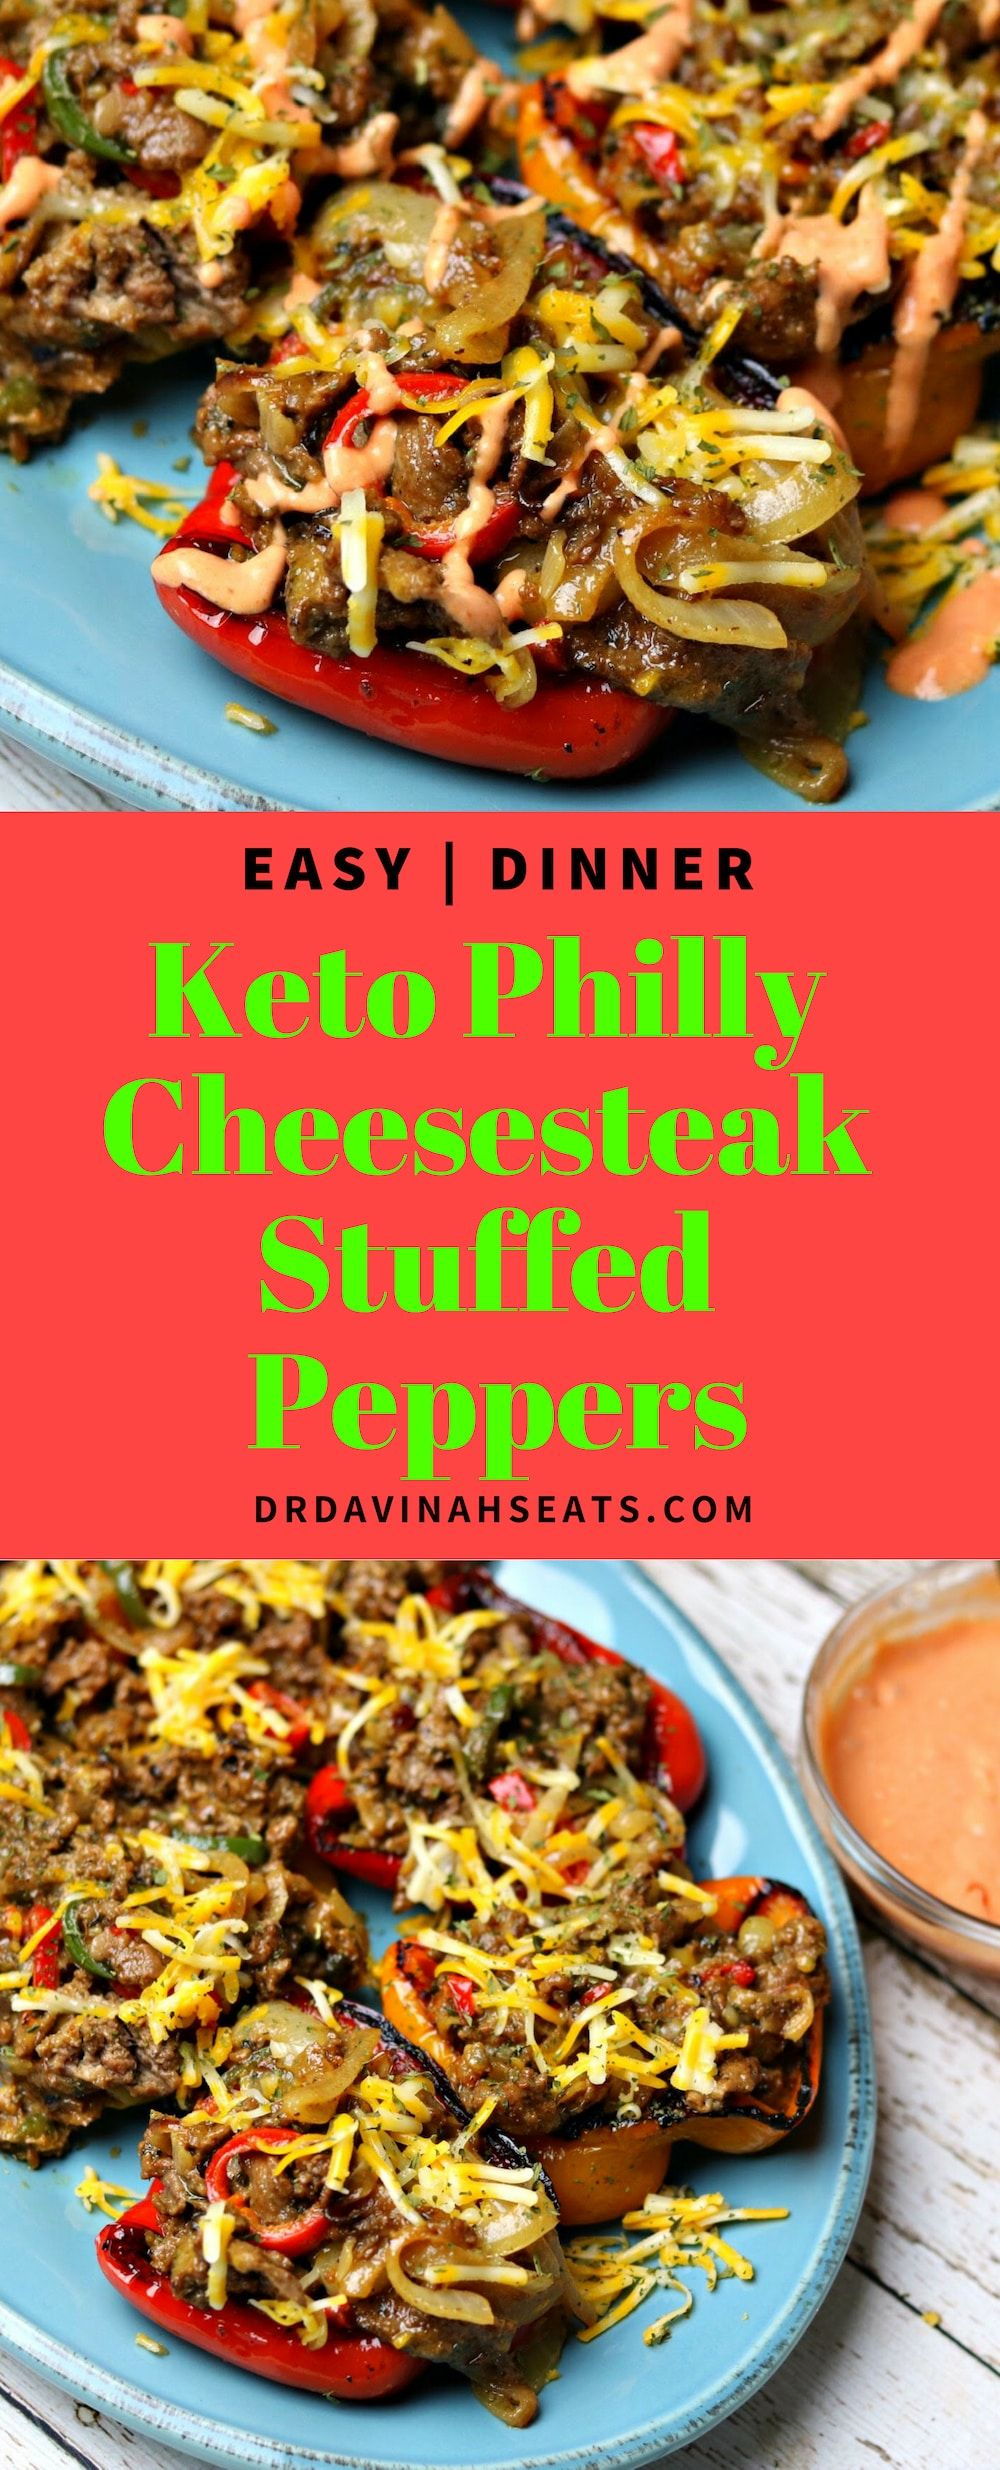 Easy Keto Philly Cheesesteak Stuffed Bell Peppers Recipe #stuffedbellpeppers